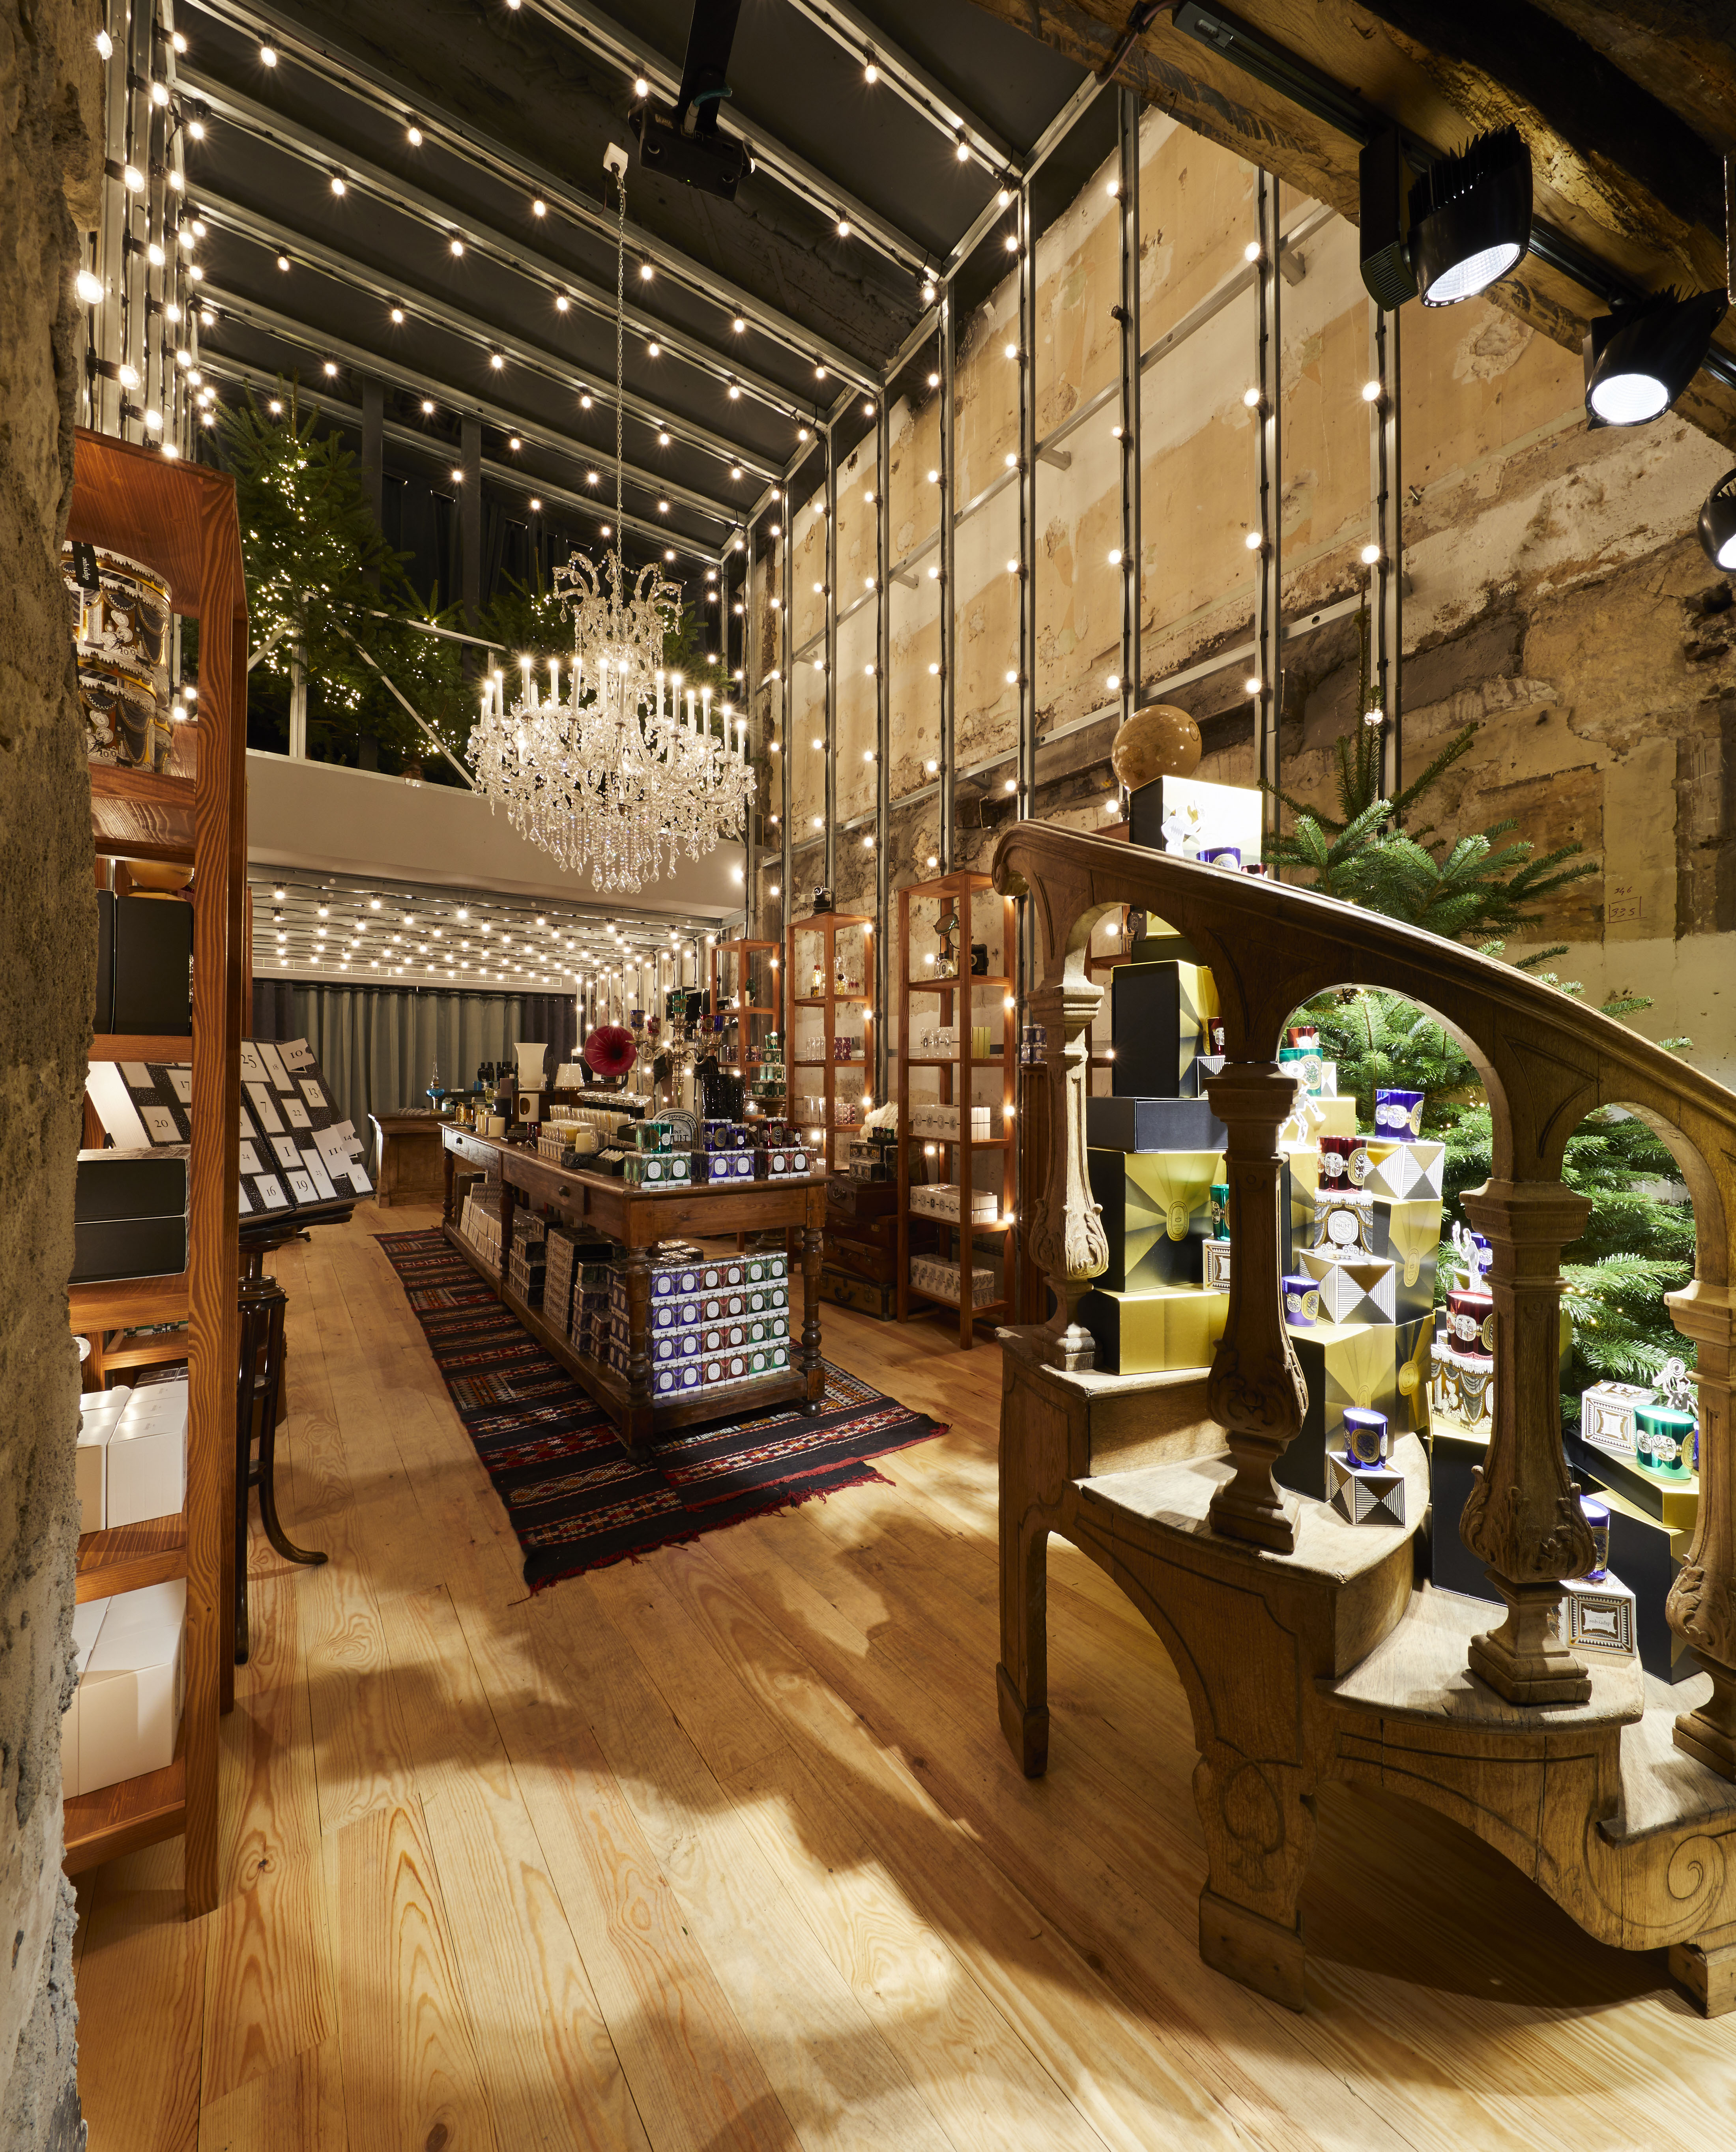 Diptytique suit la tendance des pop-up stores